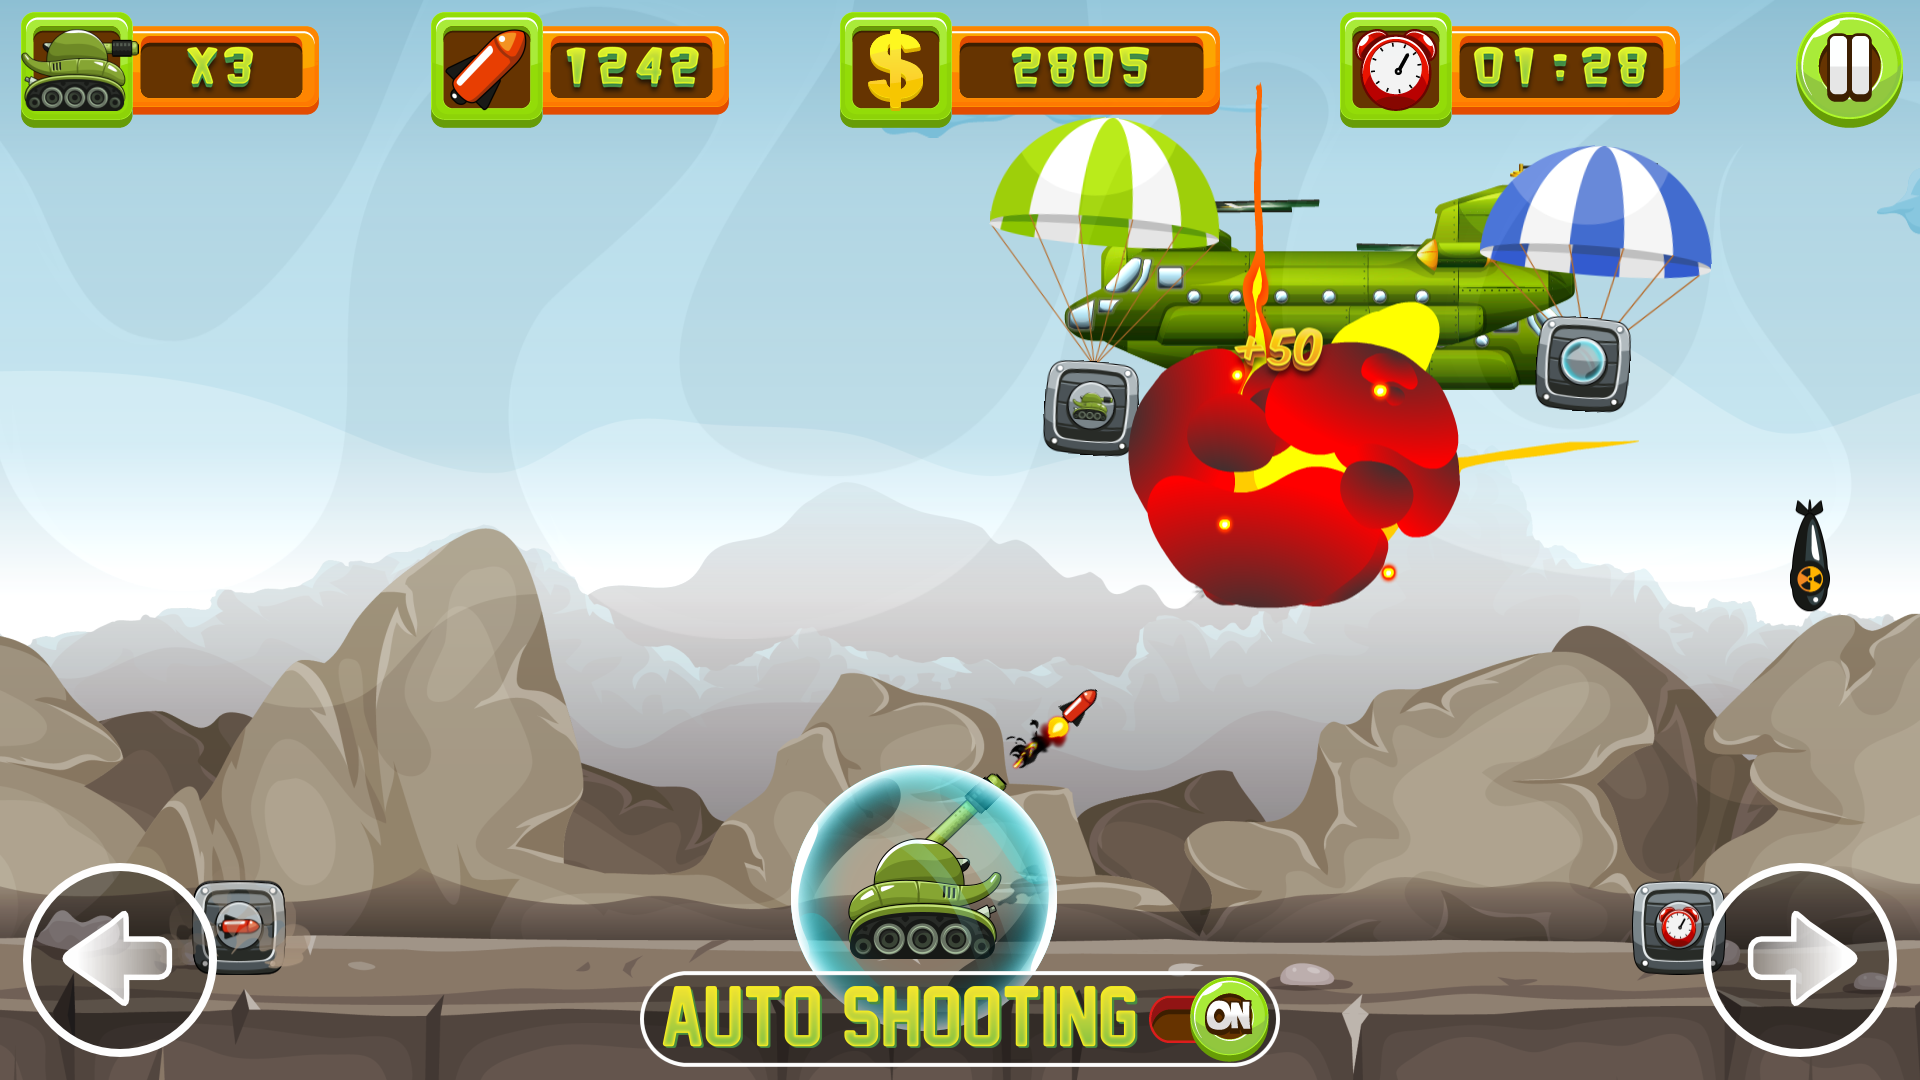 Source code tank defender games html5 - Source code html5 ios phone